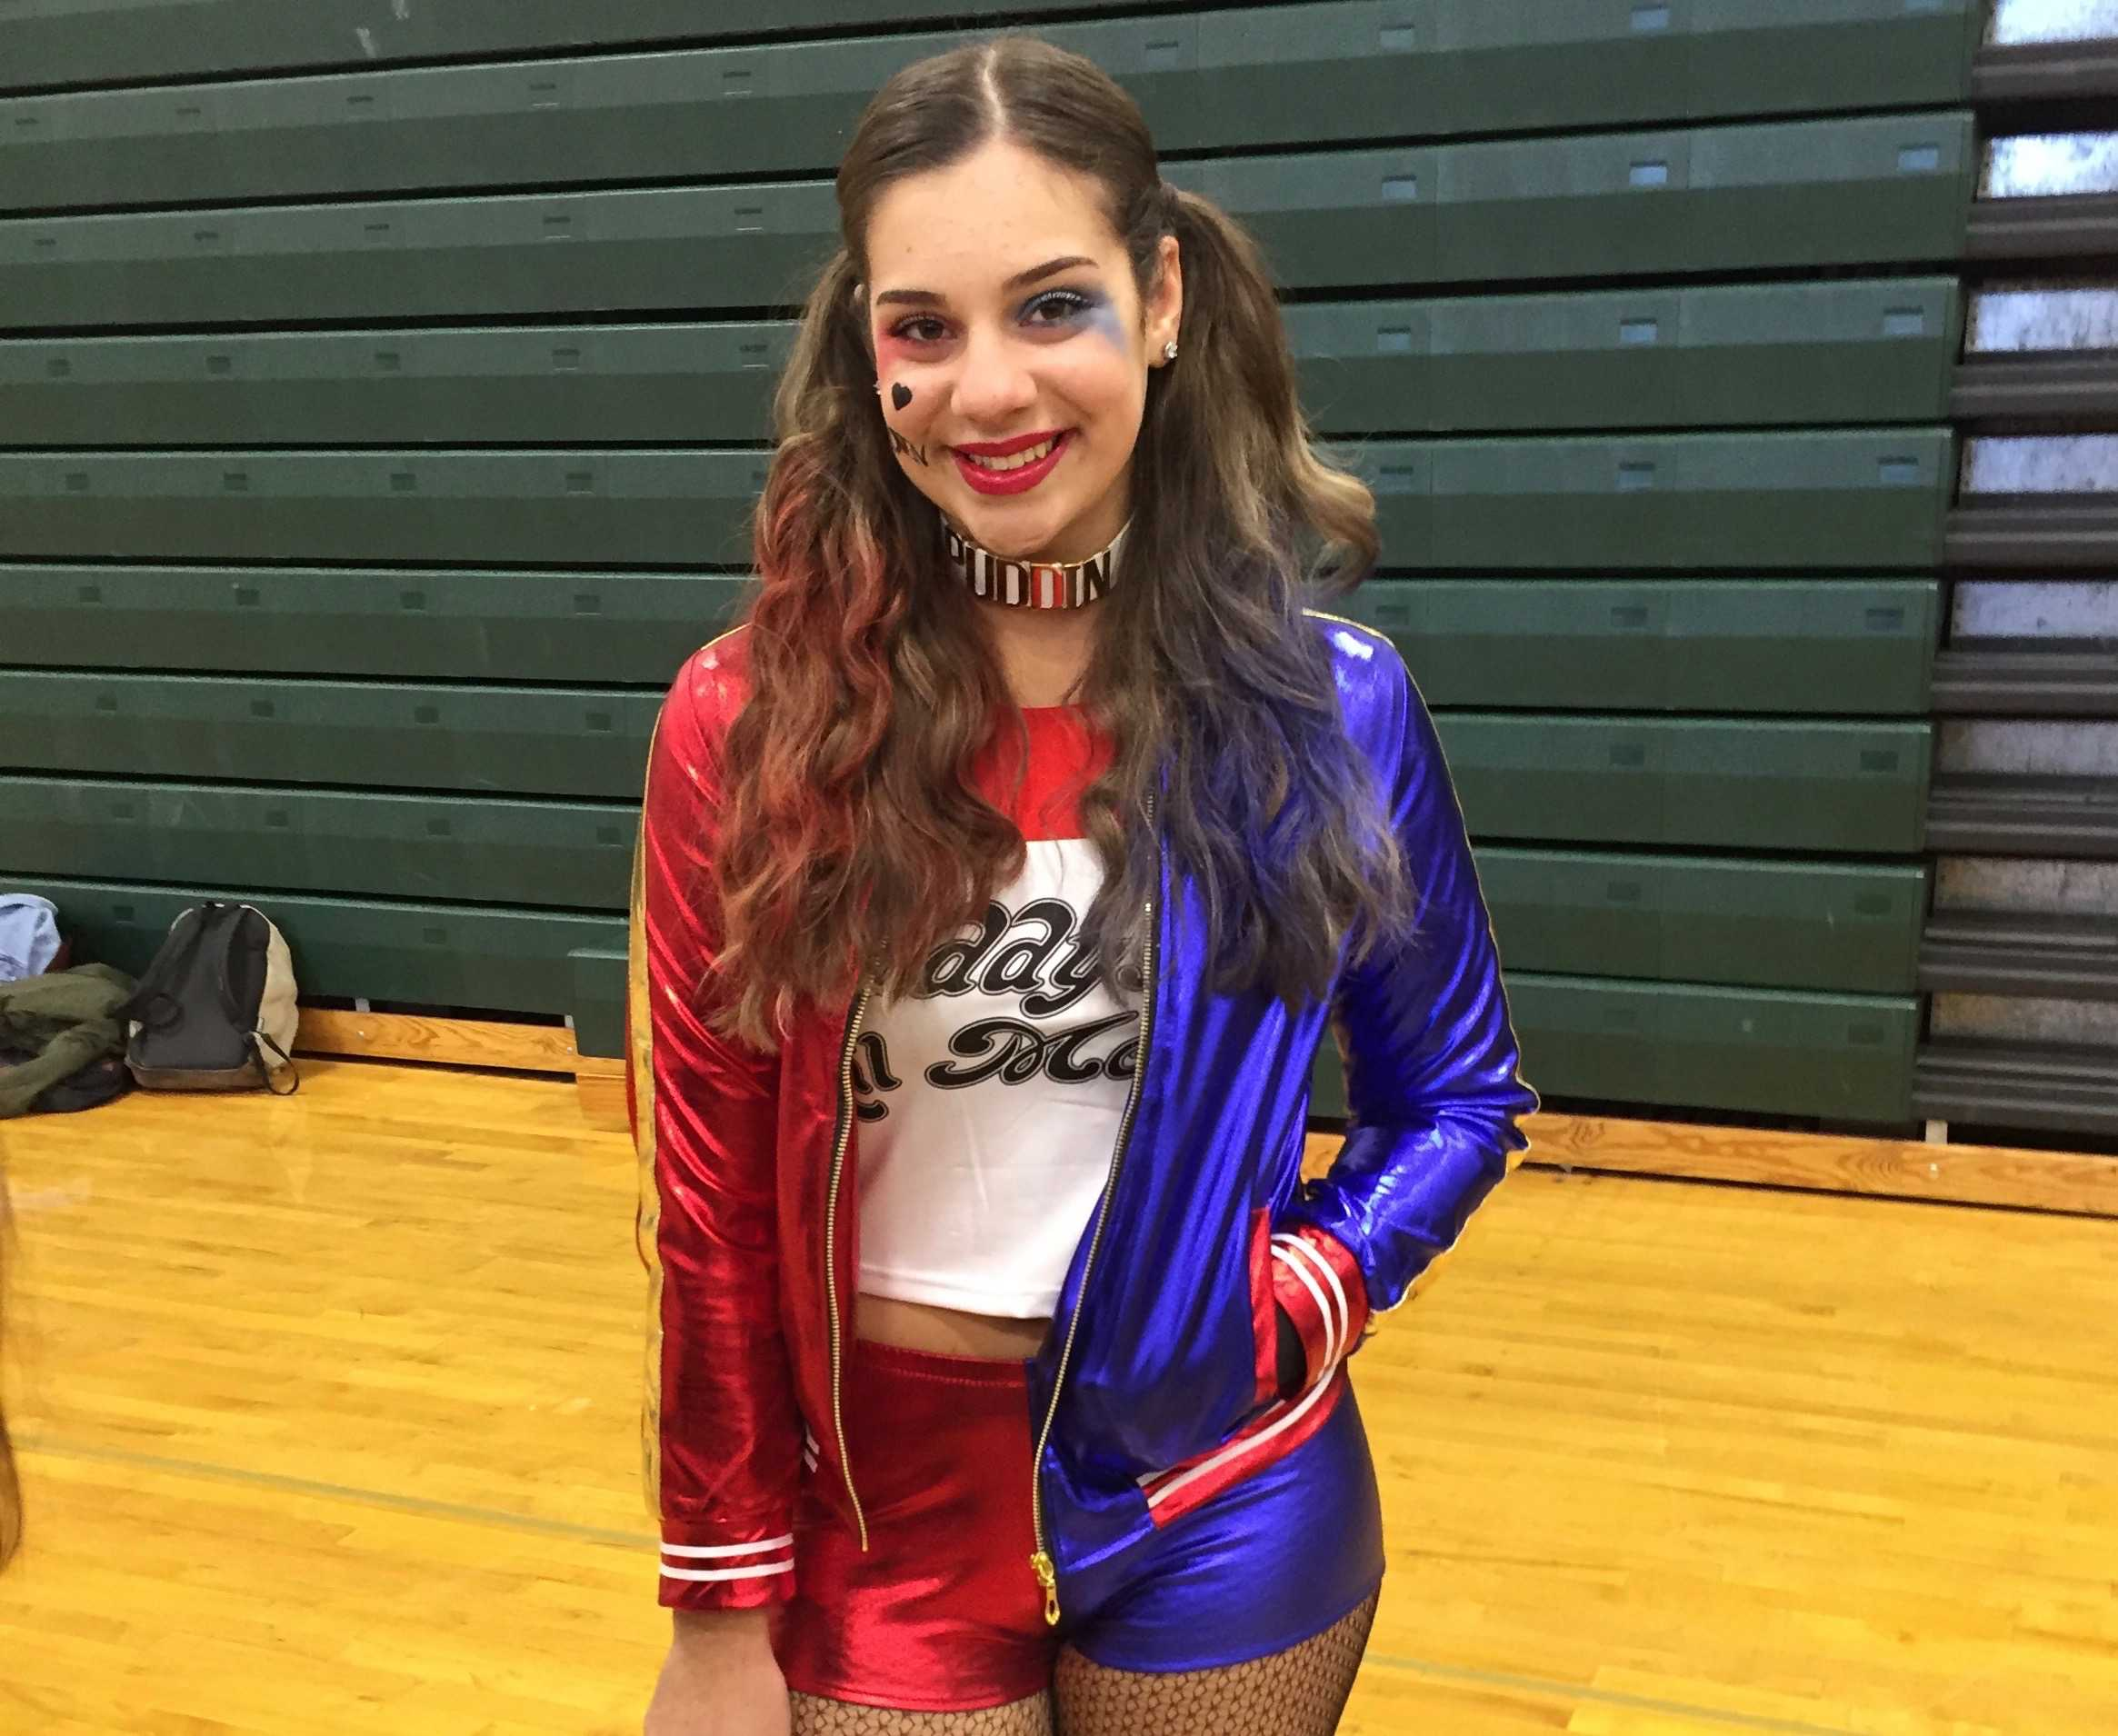 Pascack Valley Senior Jaime Minervini, like thousands of other girls across the country, dressed up as Harley Quinn for Halloween.